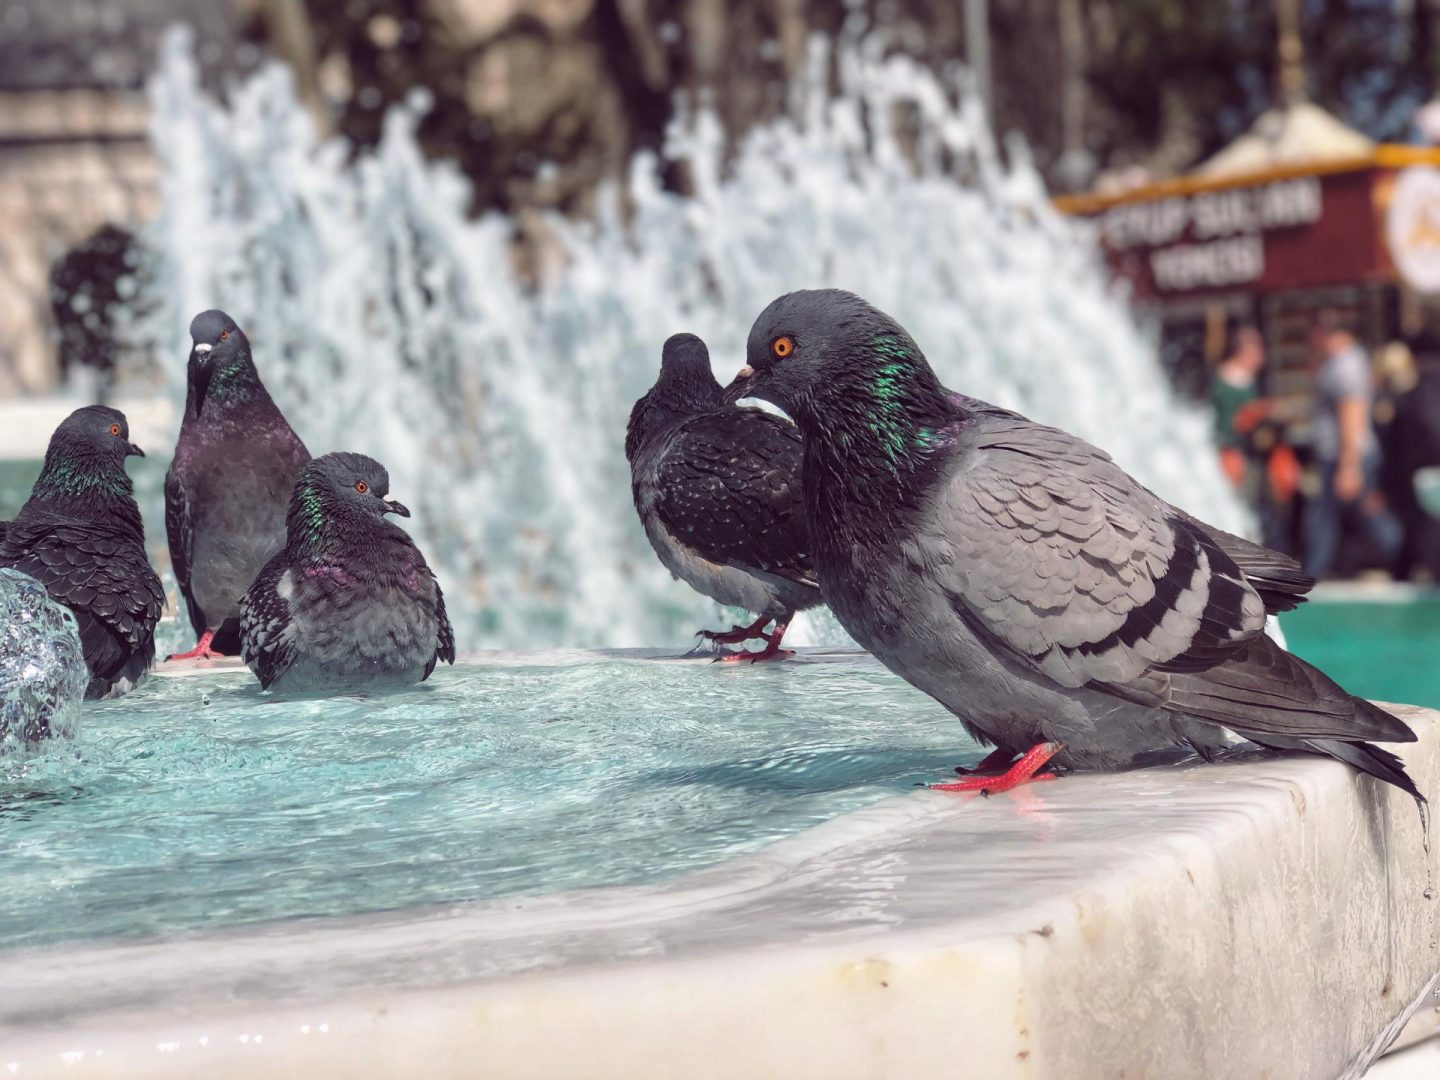 River Horse, Jacuzzi Pigeon, Sea Lizard – 12 literal translations of animal names  that will amaze you